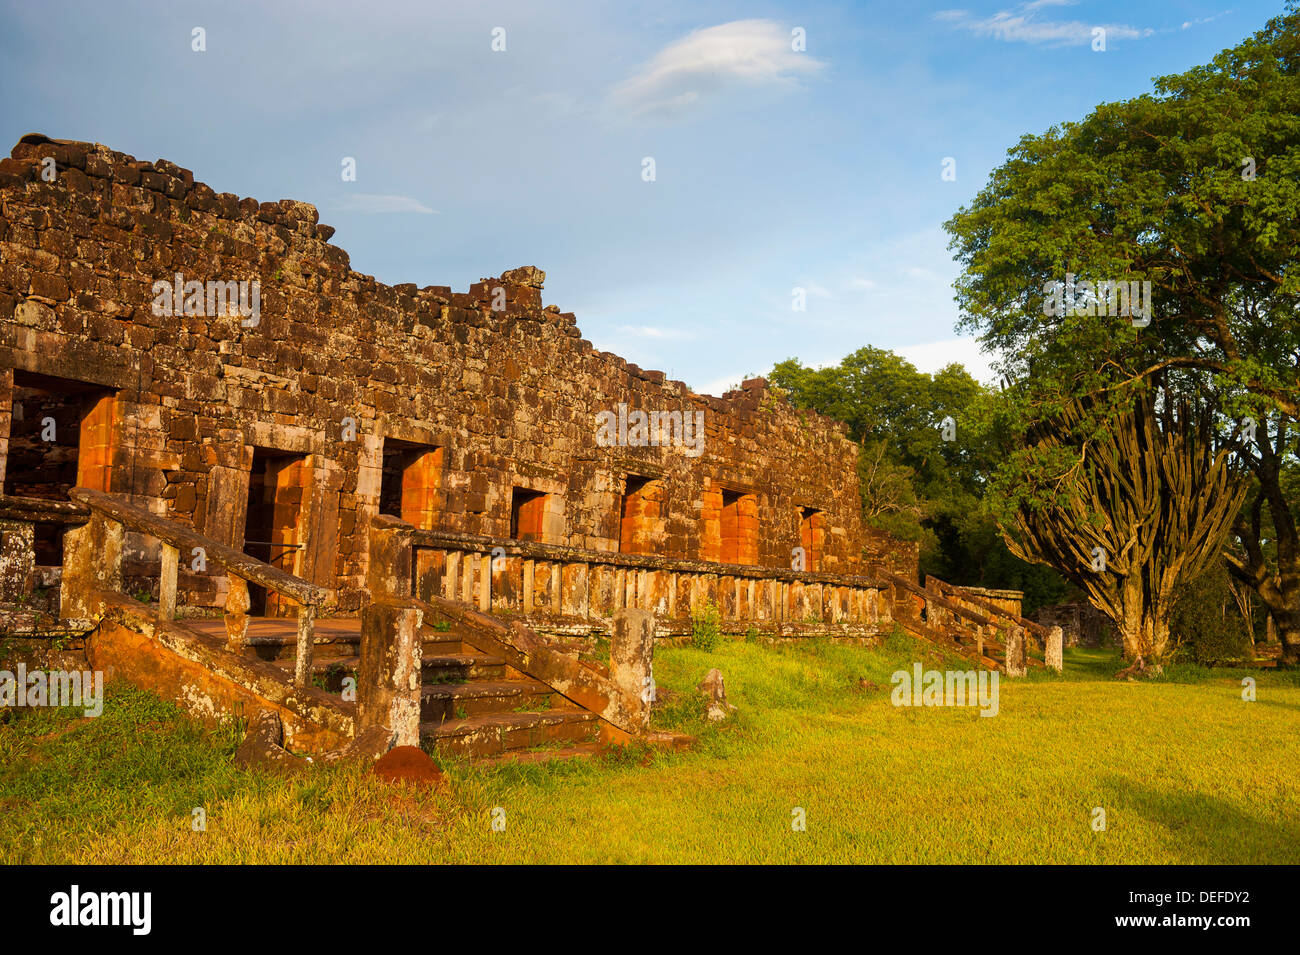 The Mission of San Ignacio Mini, UNESCO World Heritage Site, Argentina, South America - Stock Image